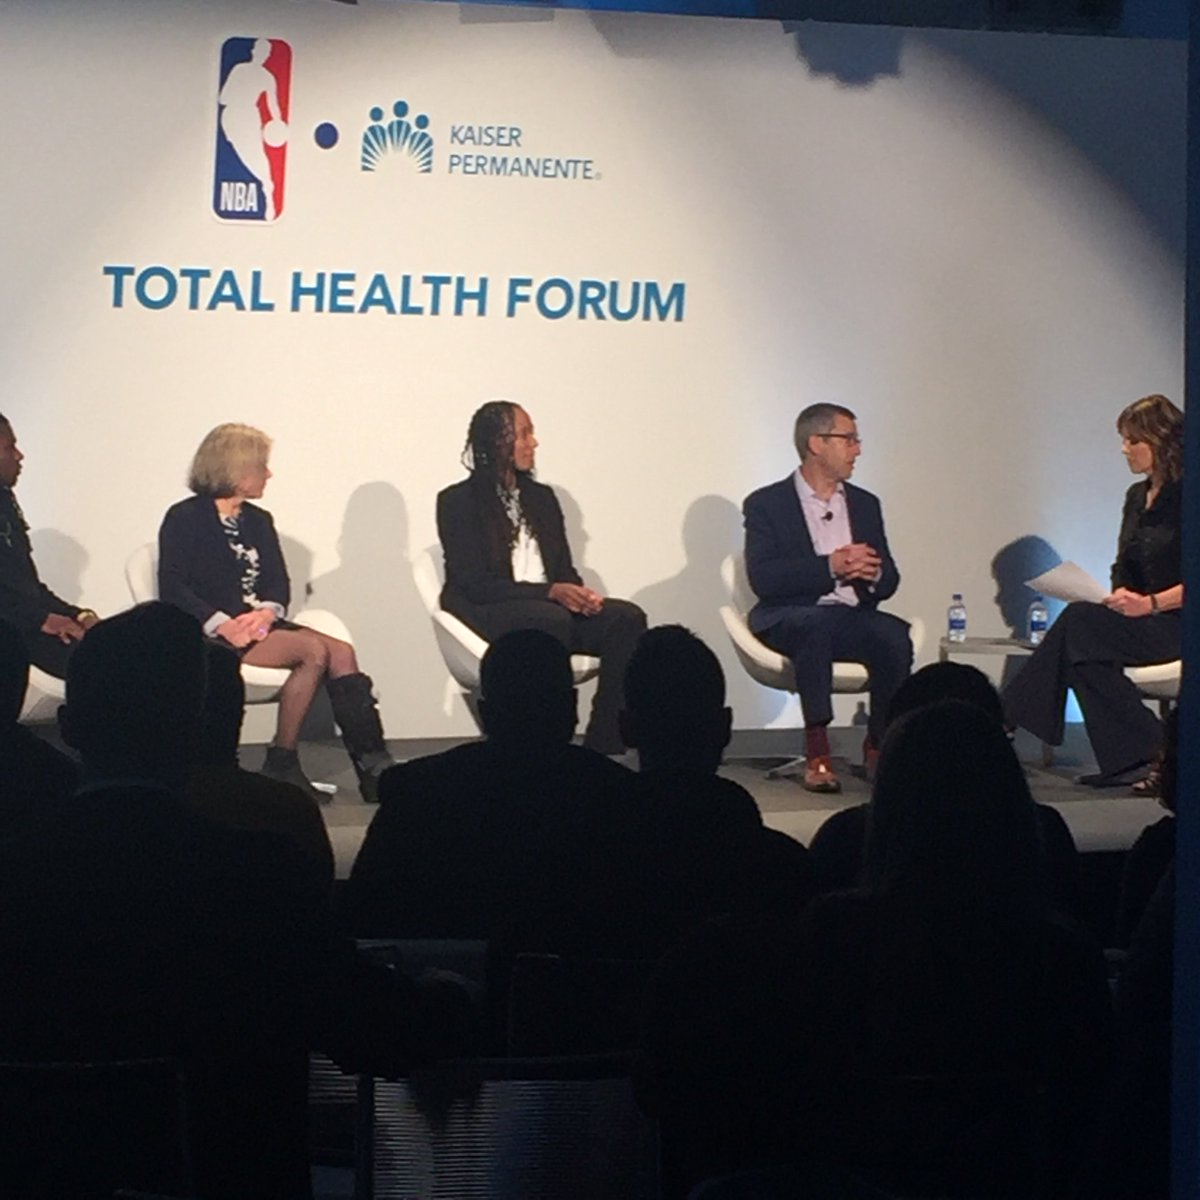 "Kaiser Permanente mental health and wellness expert, Dr. Don Mordecai discusses the challenges faced by today's youth alongside @Chold1: ""Kids today need more support and are feeling more pressure."" #TotalHealthForum #resilience @NBA @NBACares"